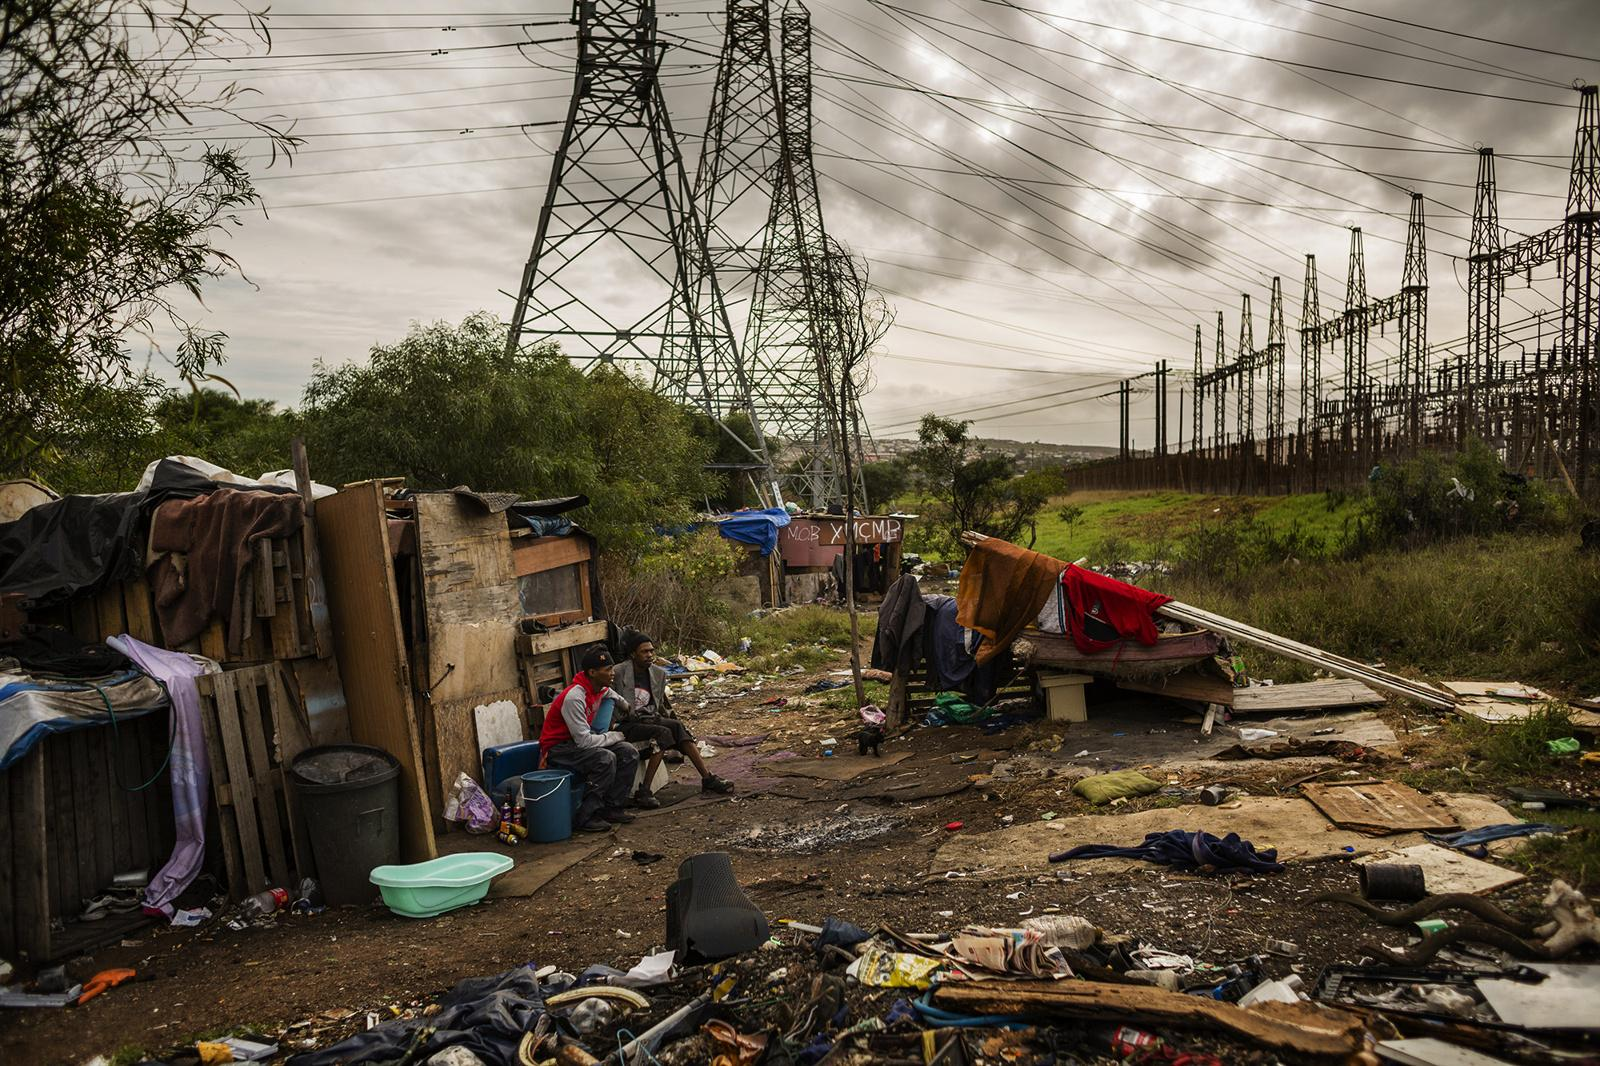 PORT ELIZABETH, SOUTH AFRICA - APRIL 06, 2015: Residents of a small community next to a dumpsite hang out in front of their shacks after a day of work April 06, 2014 in Port Elizabeth, South Africa. They make their living by tips for helping unload garbage off people's cars and reuse items. Most of the people that live at the dumpsite used to be associated with gangs and are now escaping this dangerous lifestyle. Many of them come from Helenvale, an area that is now home to approximately 21 gangs, hence nicknamed 'Katanga', after the war-stricken province of the Democratic Republic of Congo.